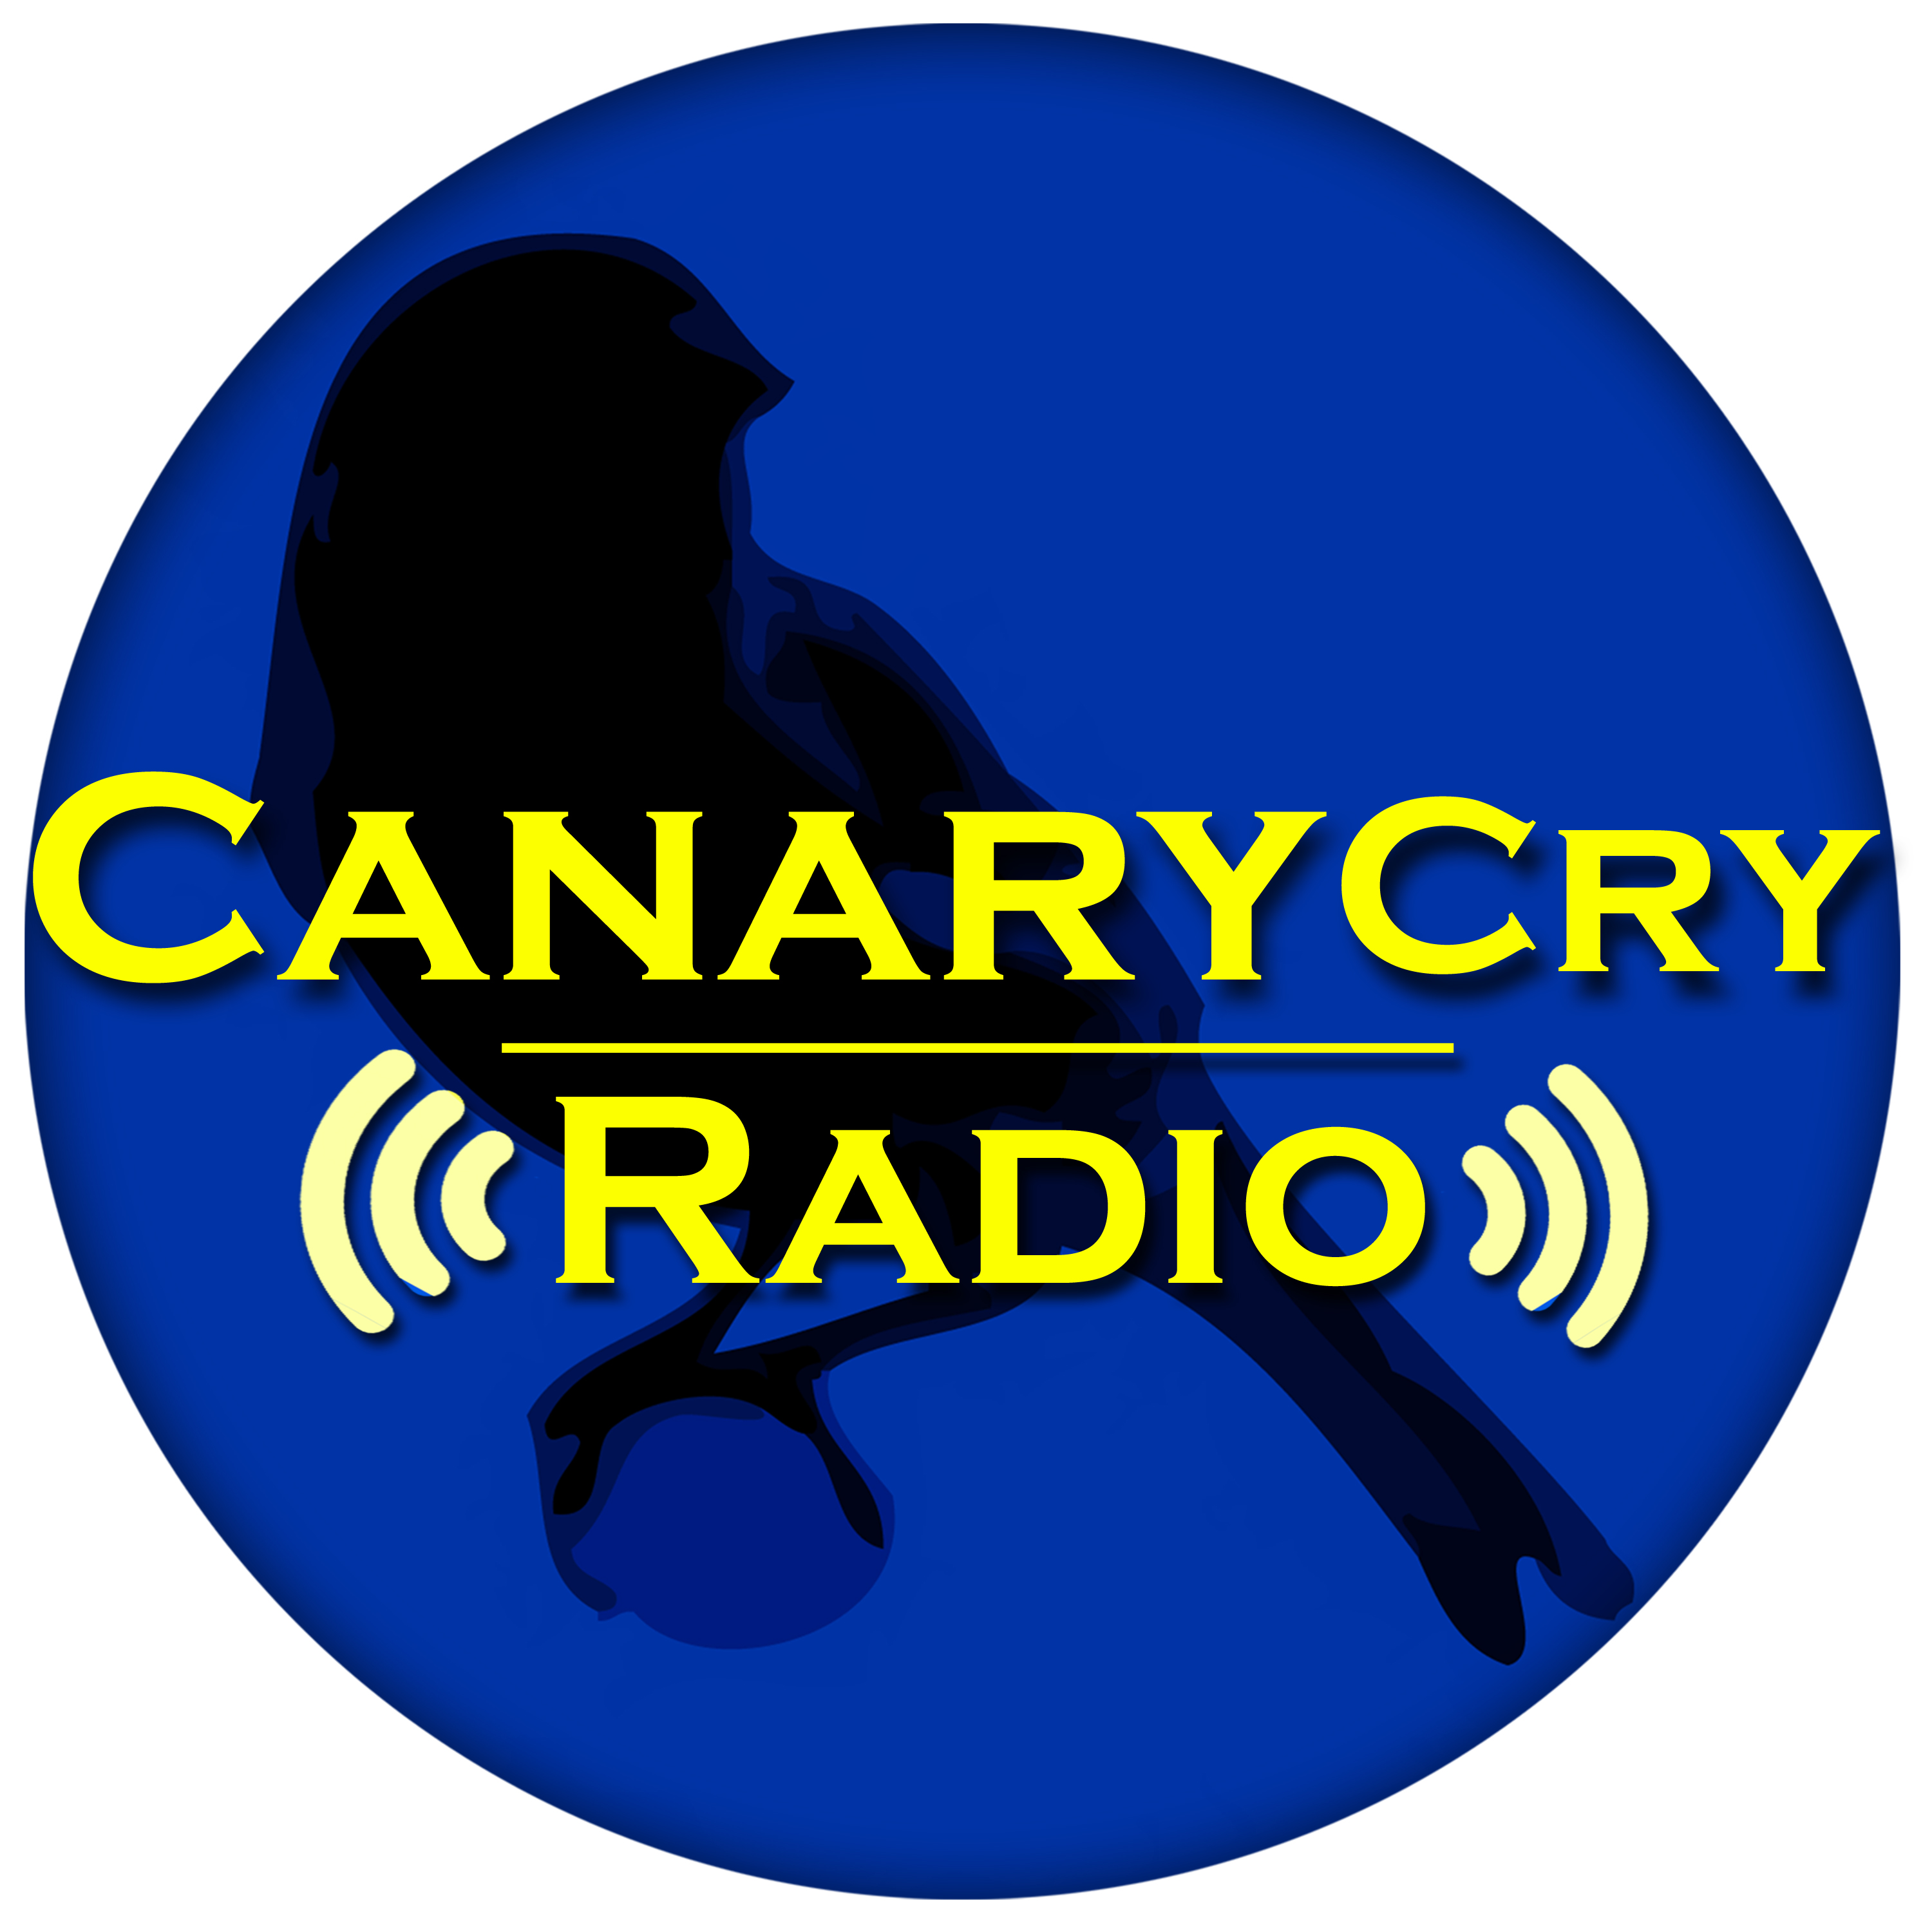 Canary Cry Radio